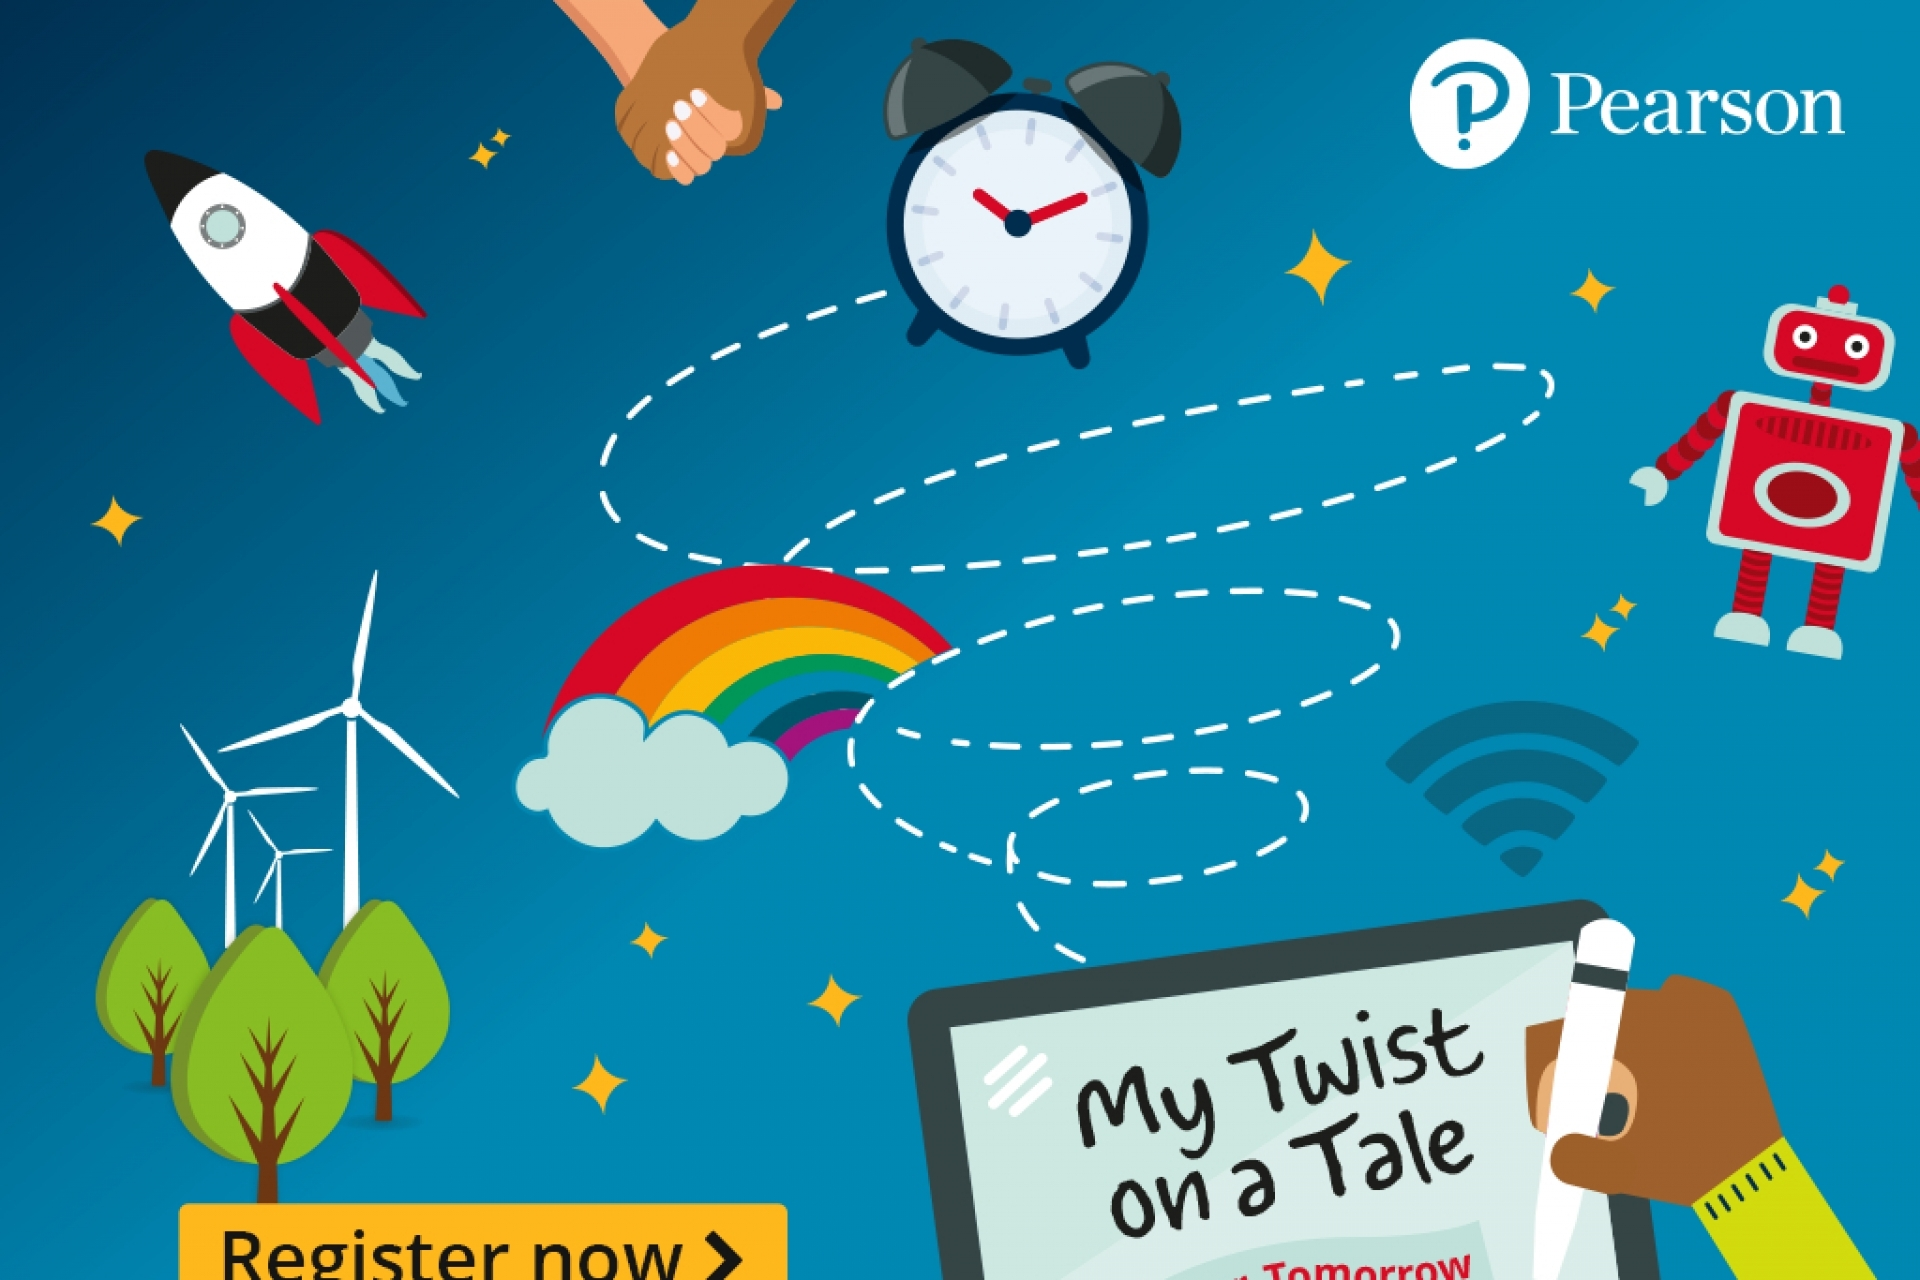 Pearson's My Twist on a Tale: Our Tomorrow writing competition now open for entries